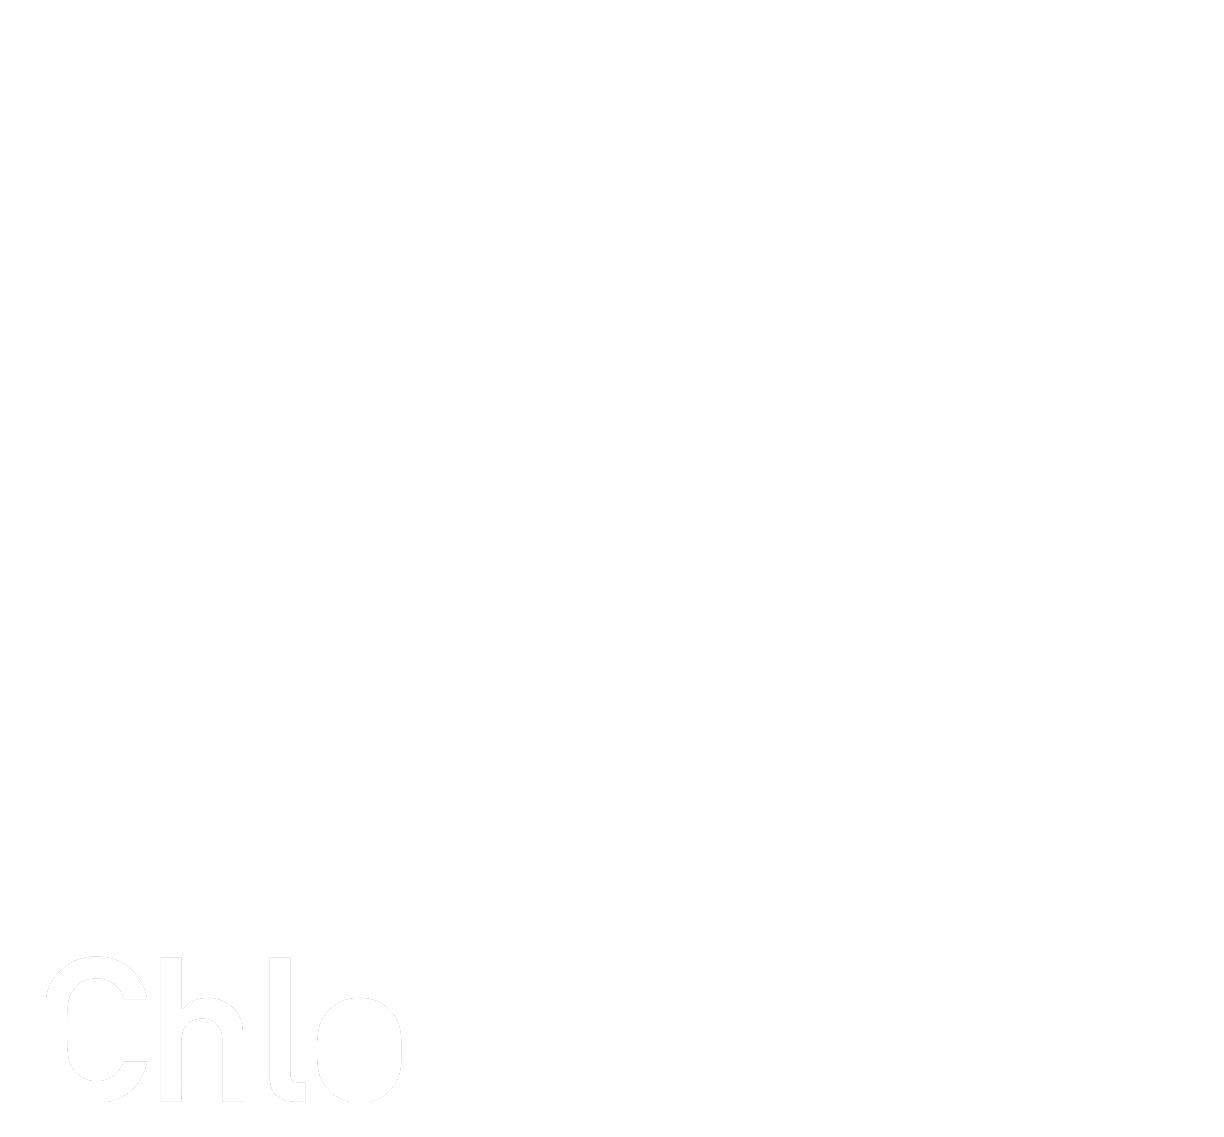 Chloris Home